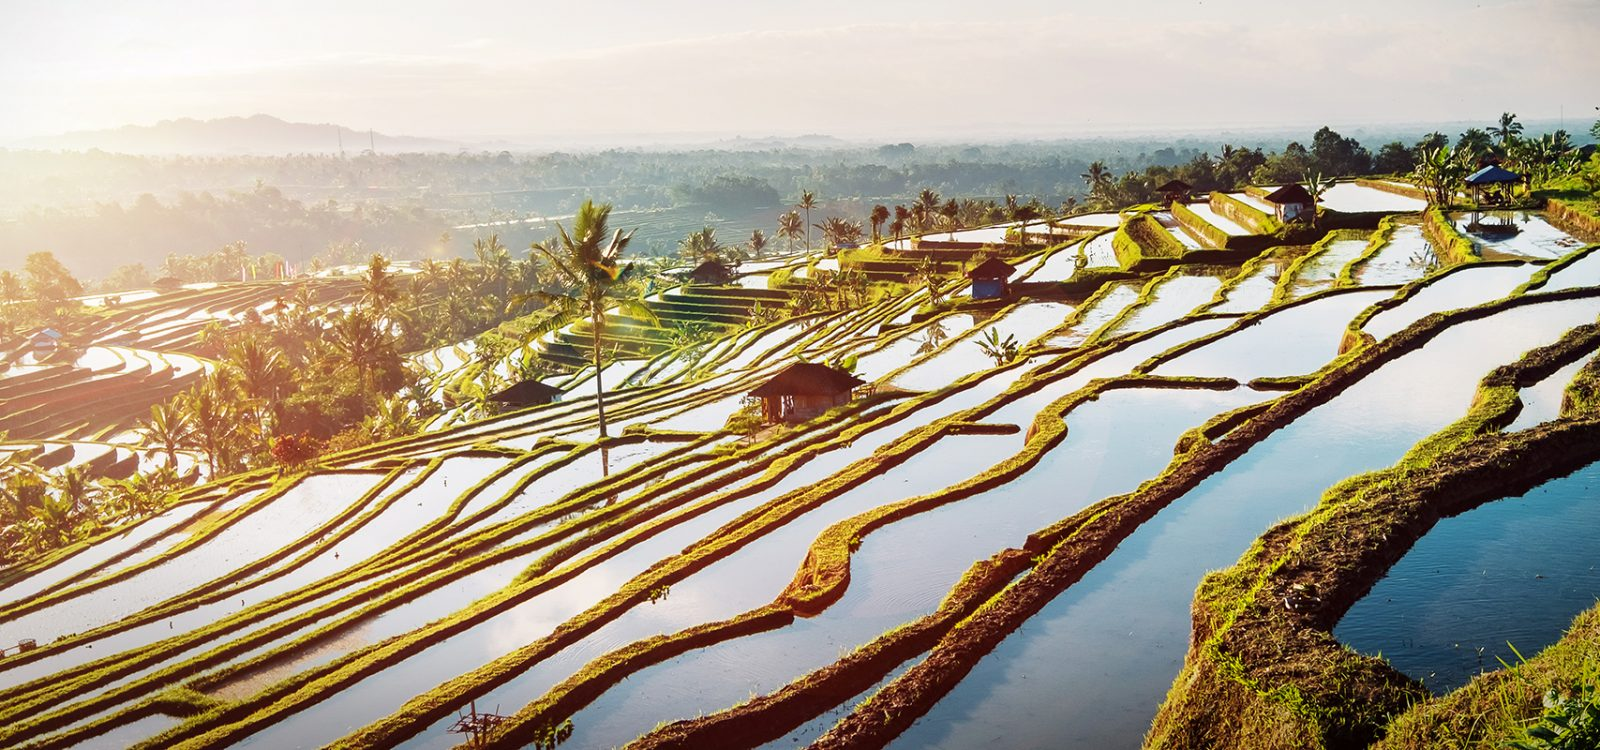 Bali Rice Terraces.